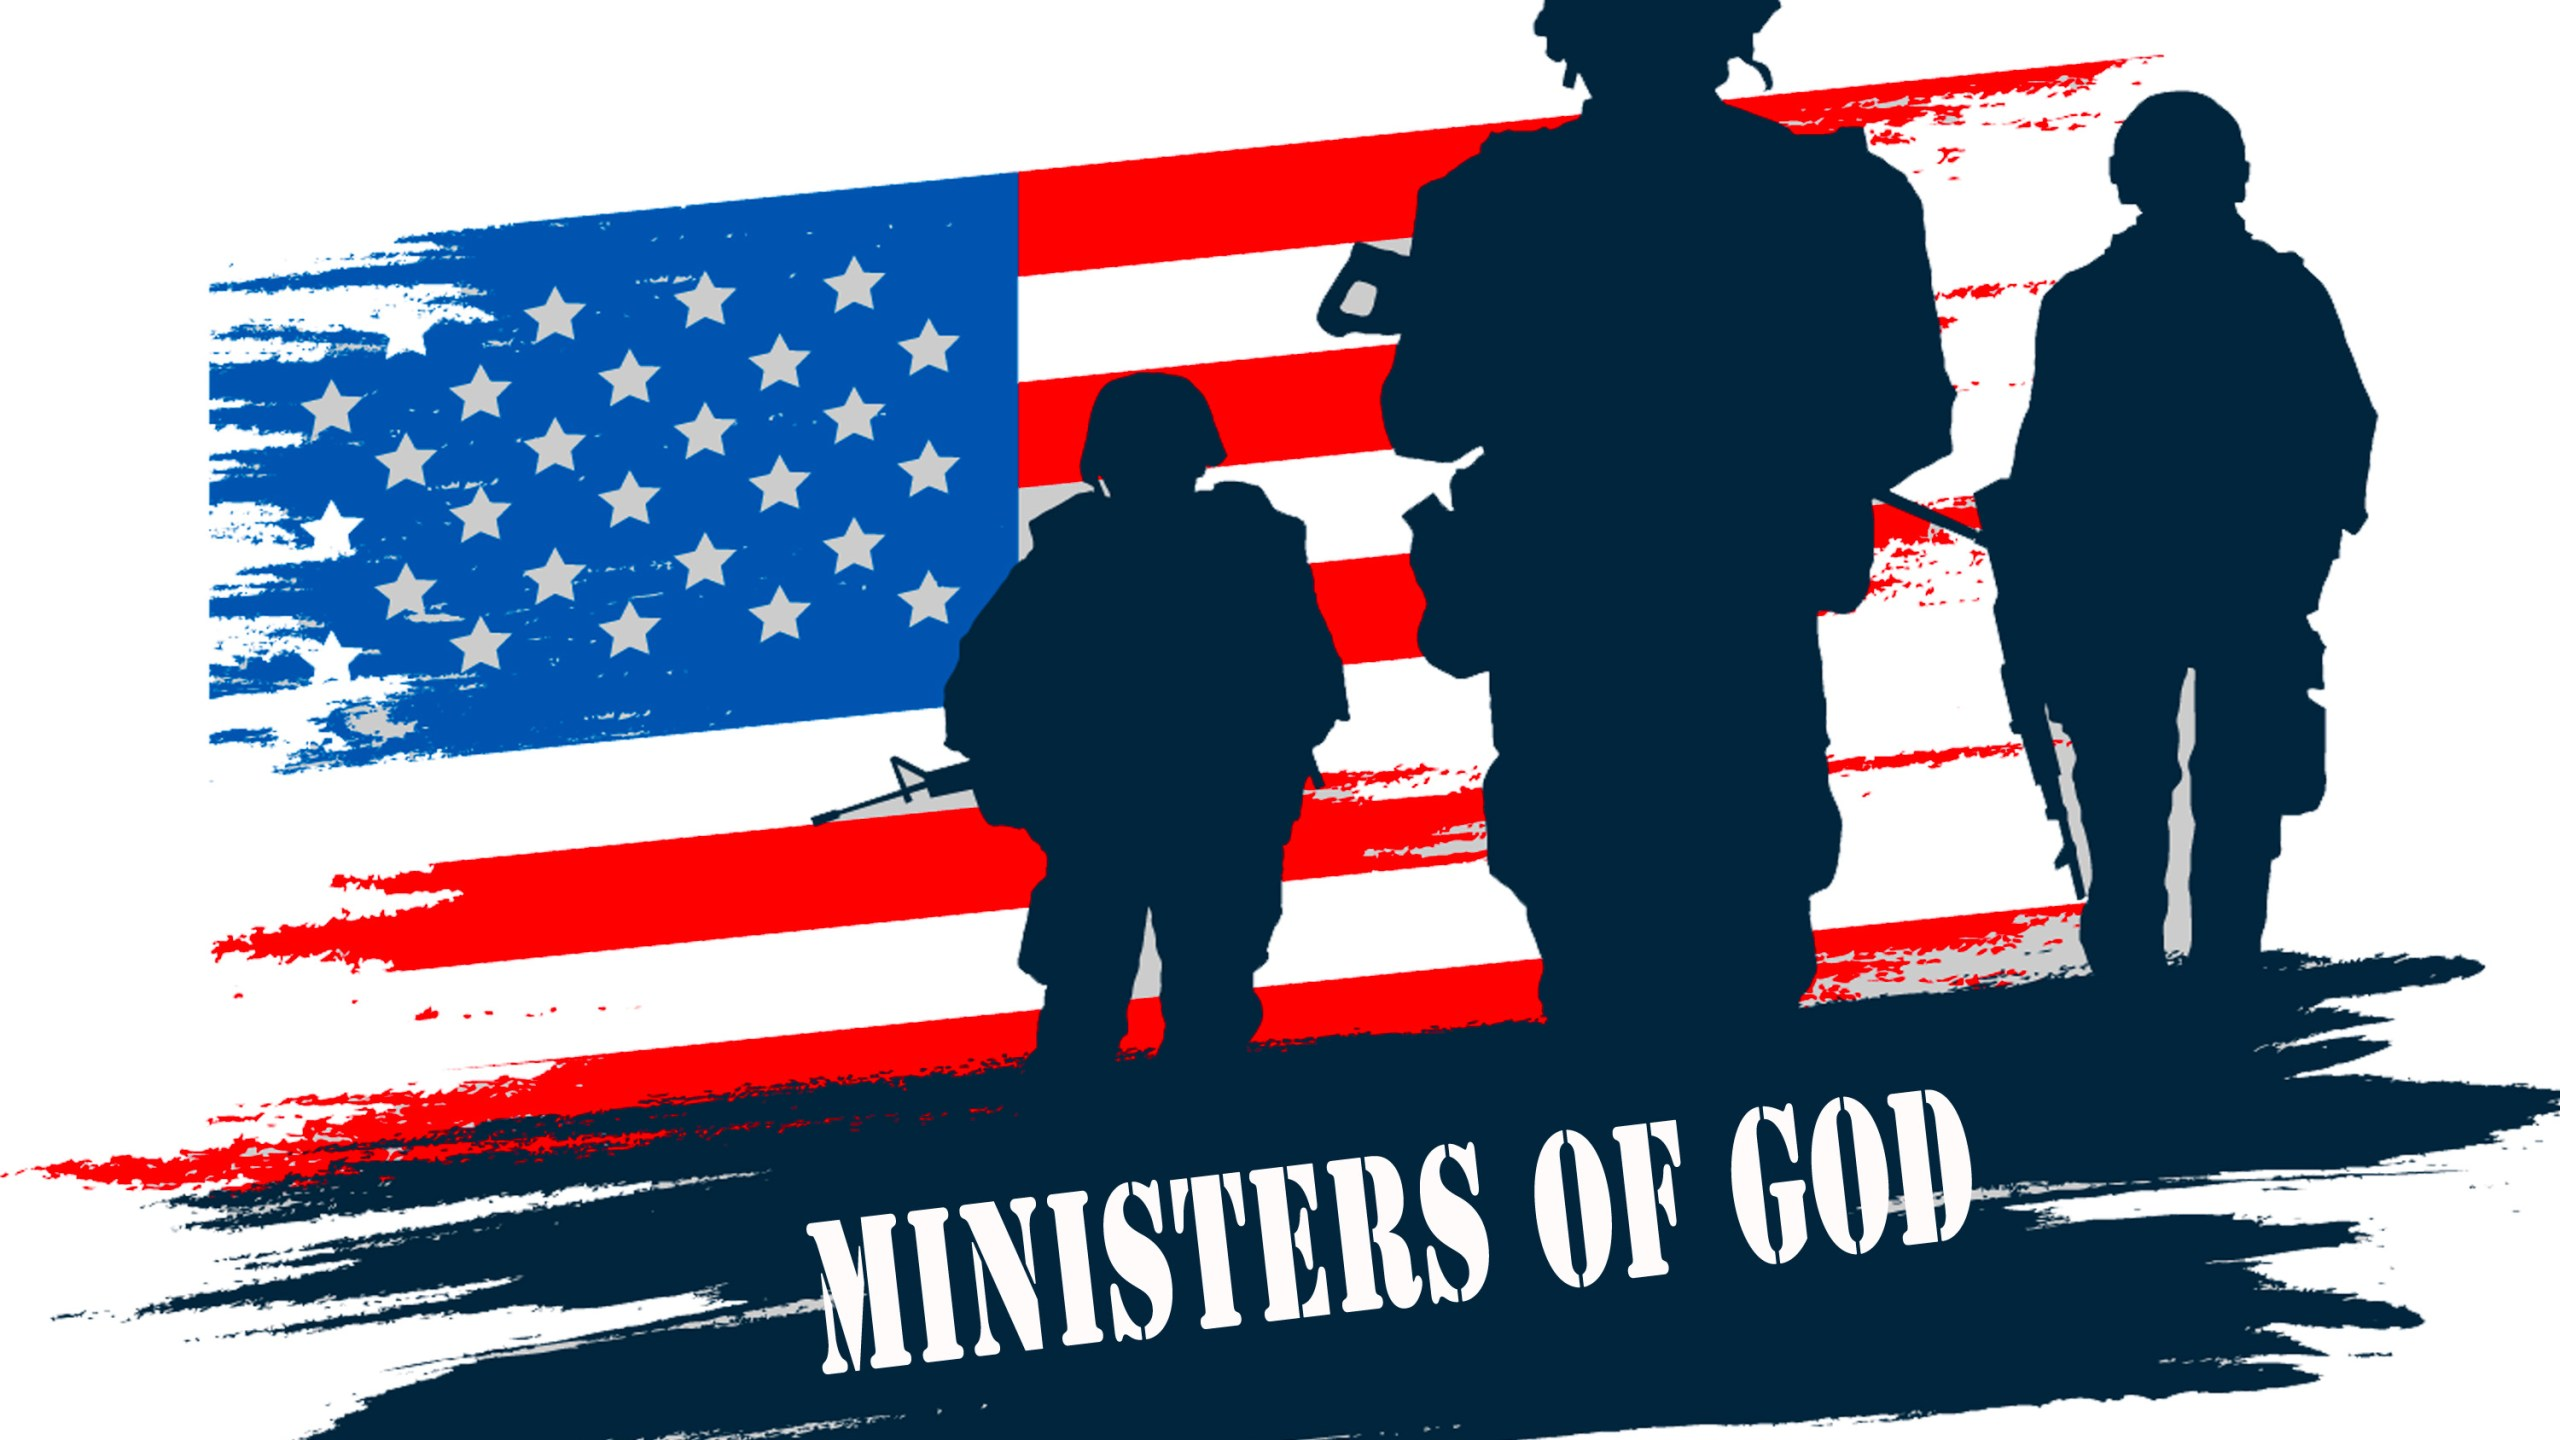 Ministers of God